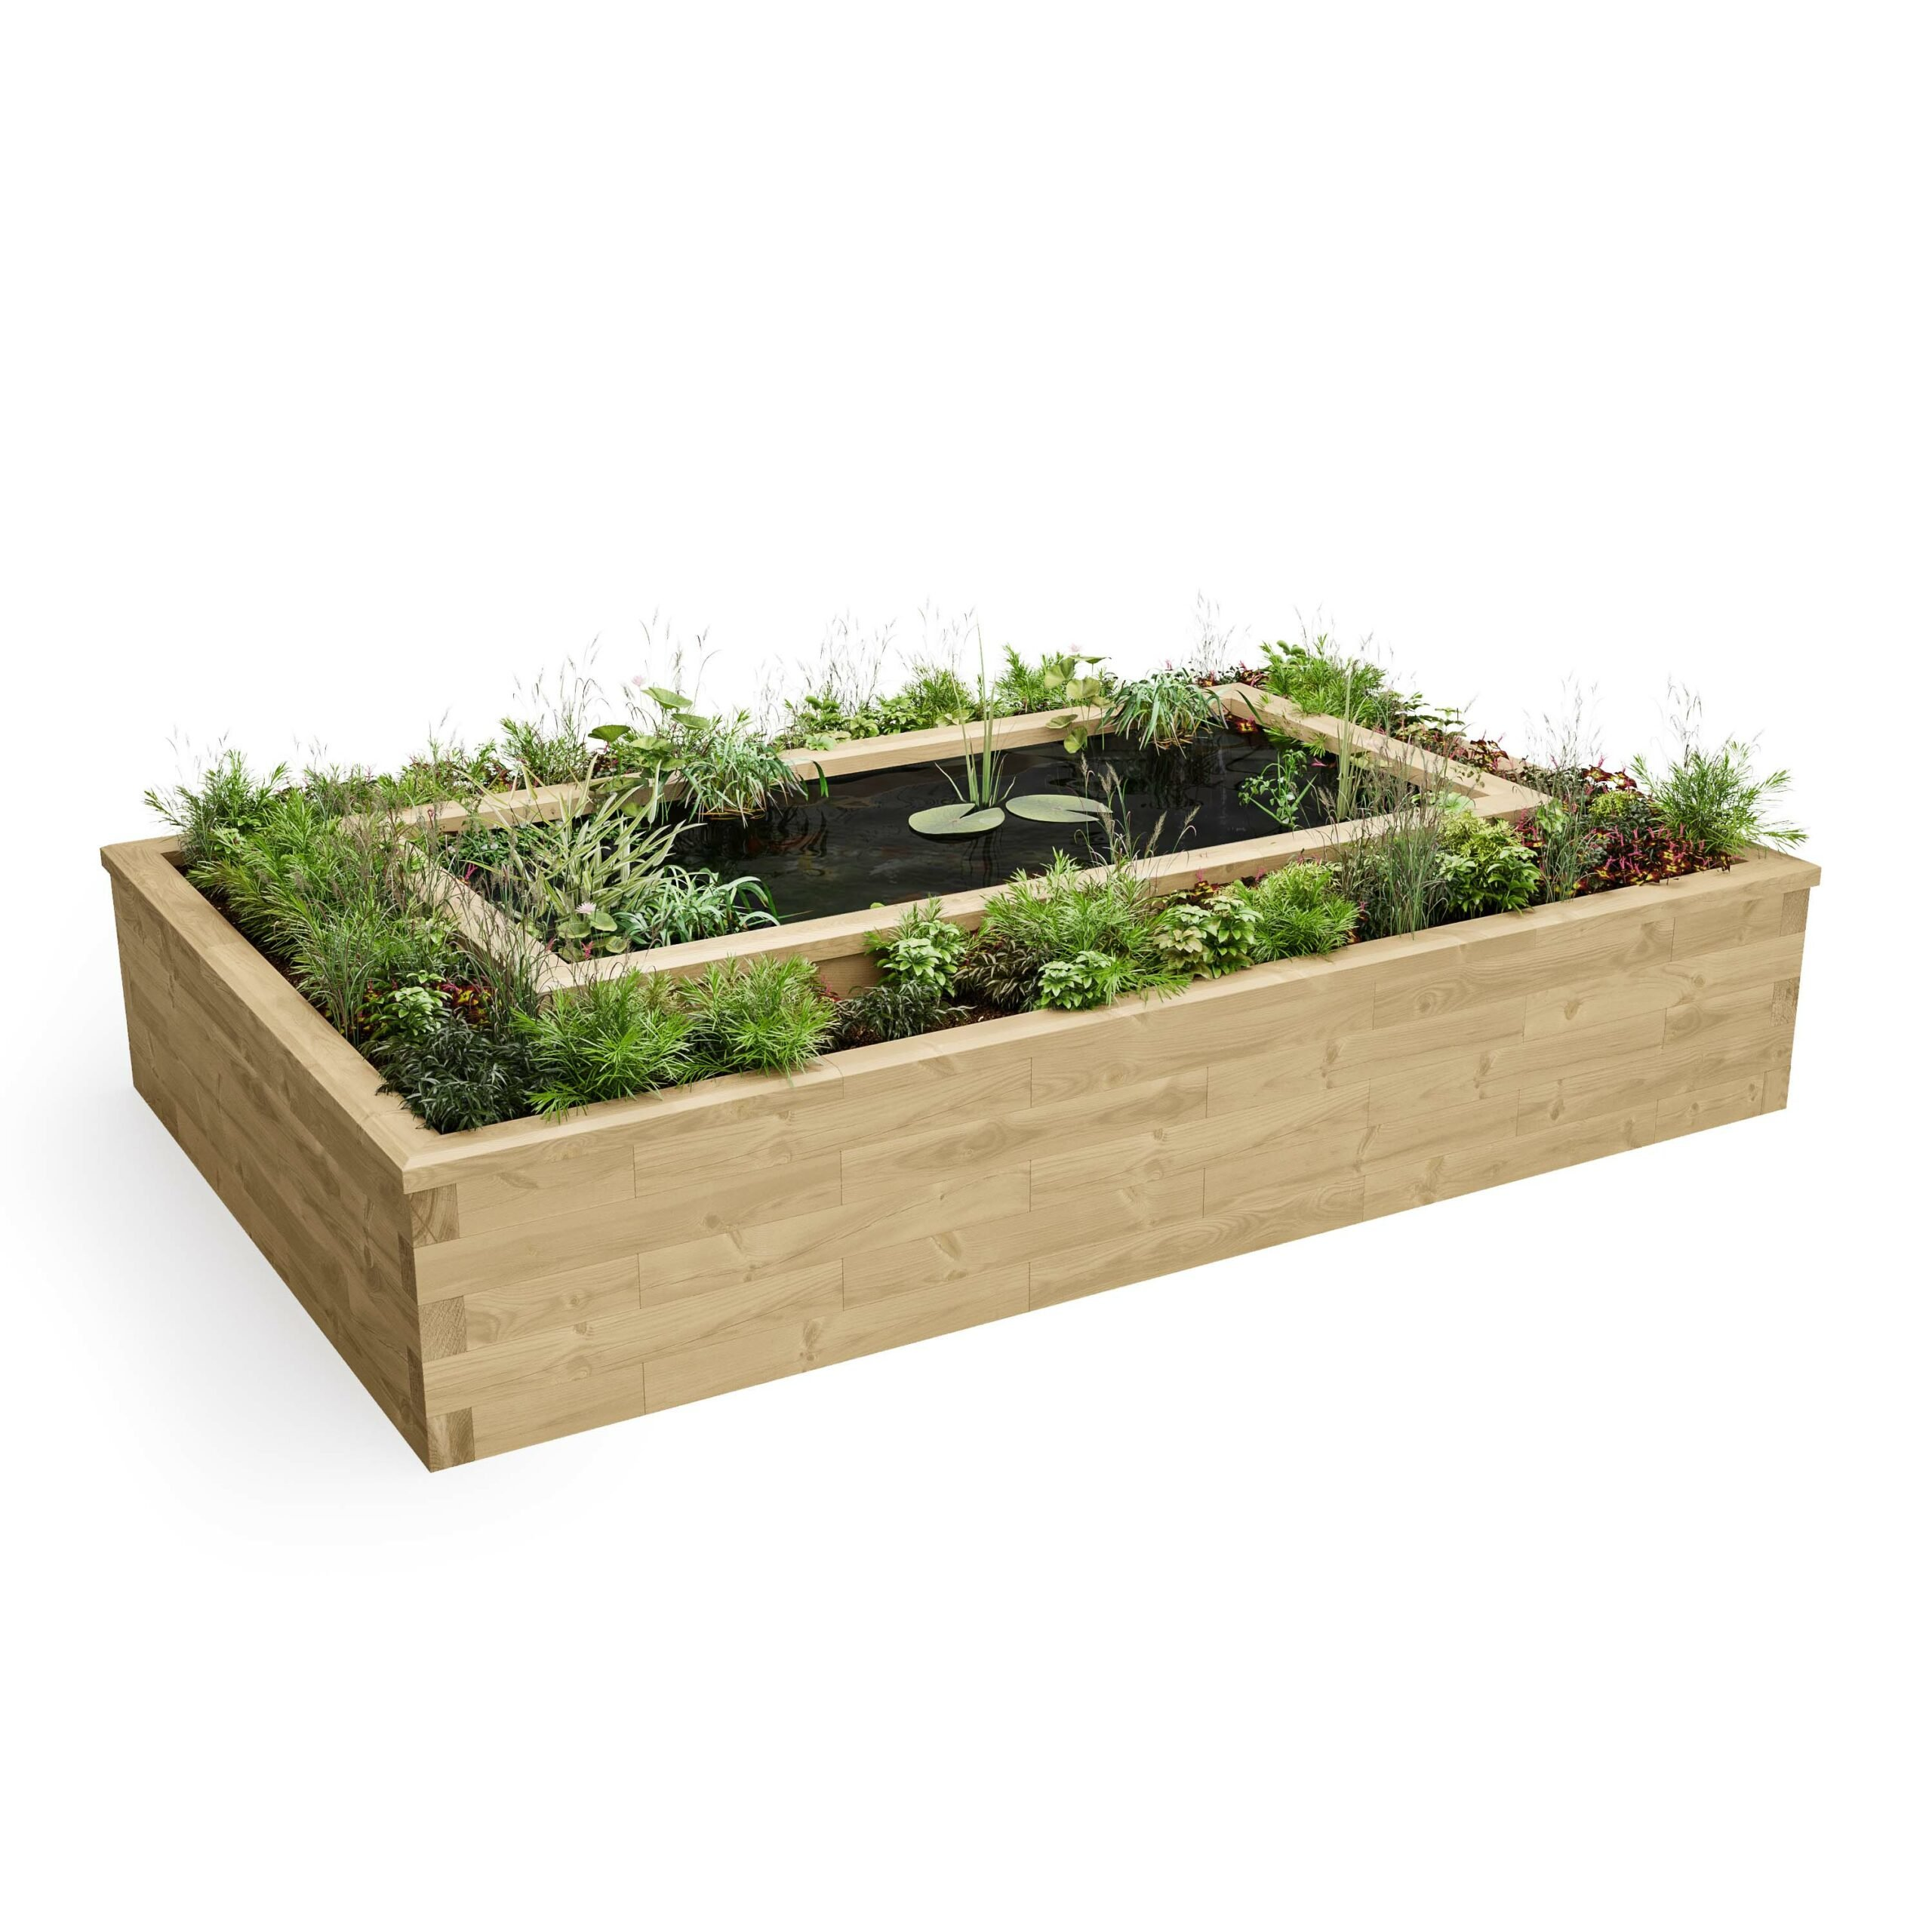 How to build a garden pond using WoodBlocX